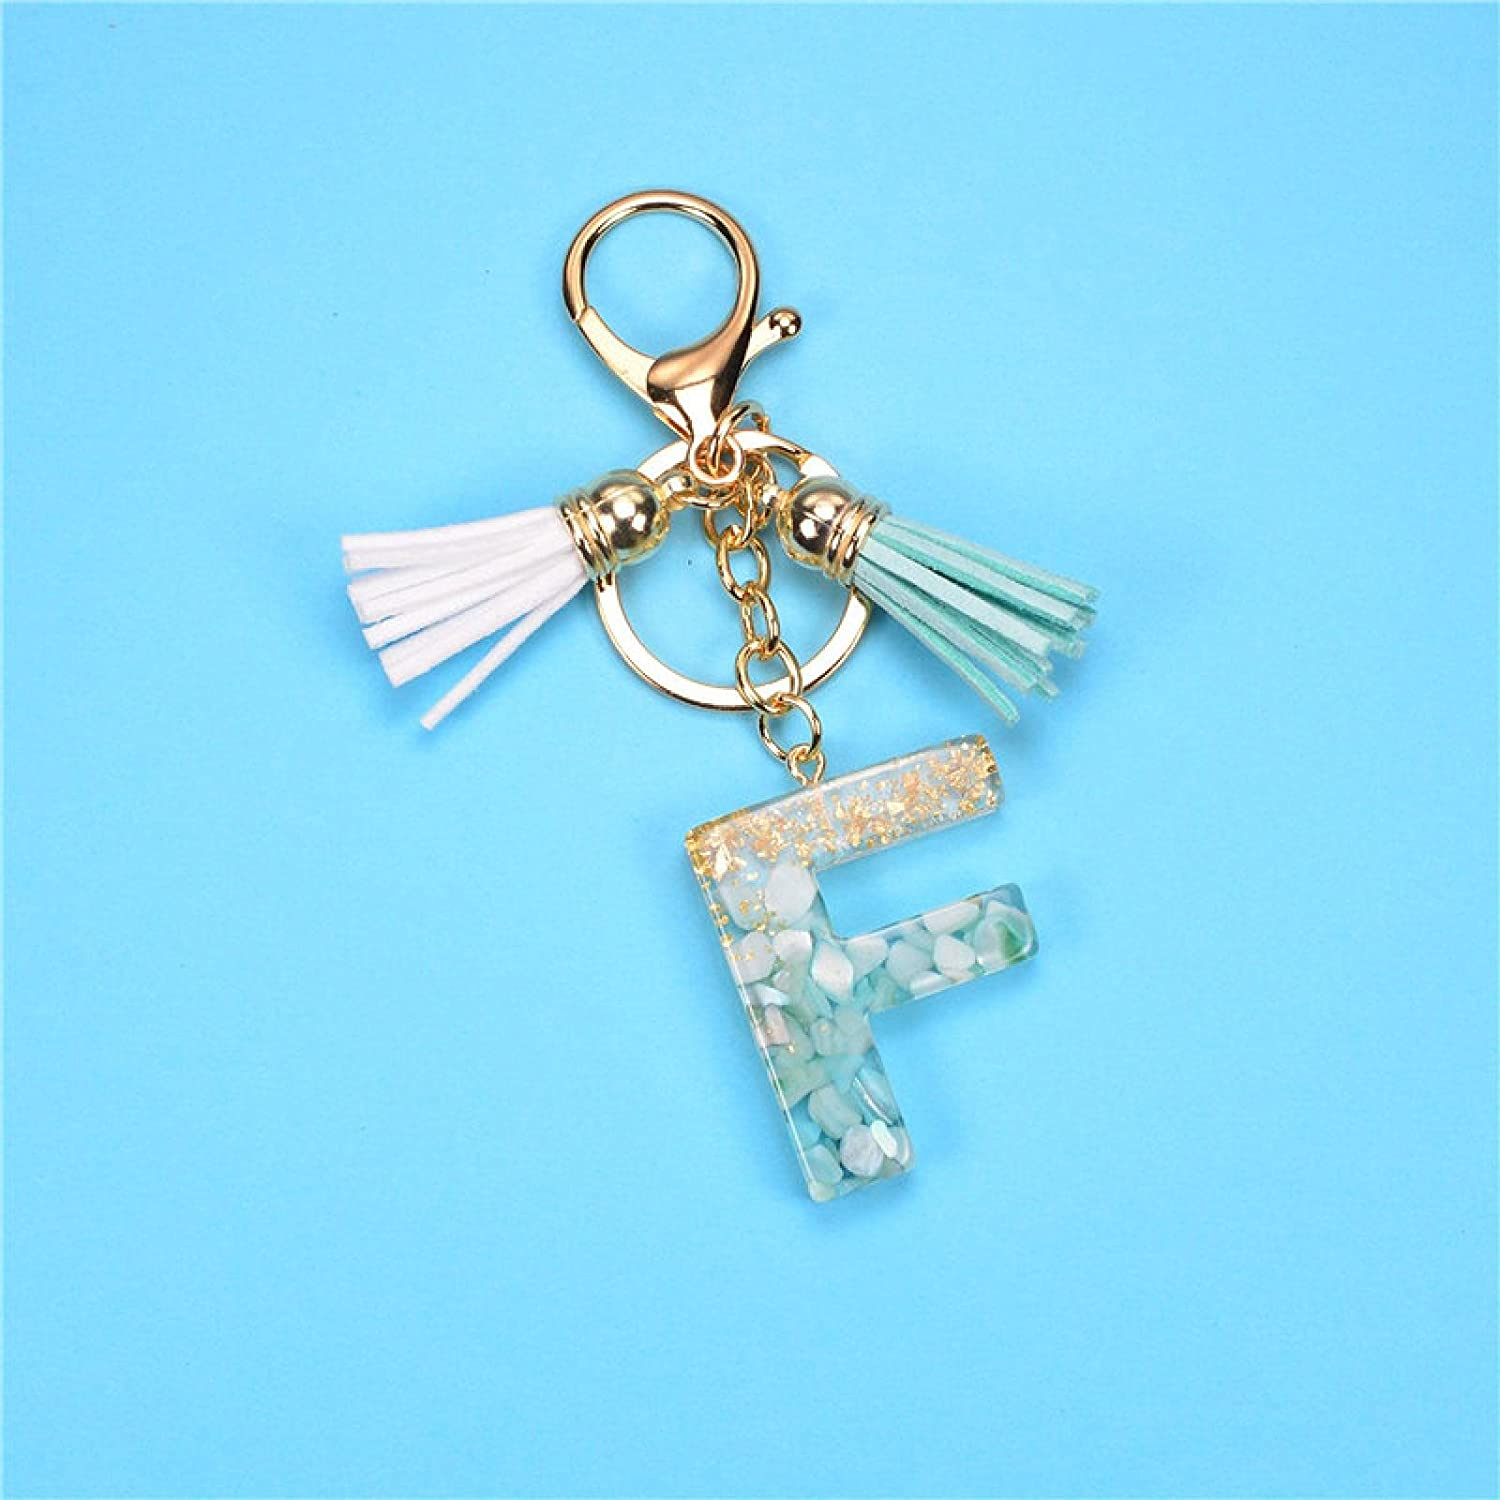 SZLGPJ Gold Green Gradient Resin Ladies Now free shipping 5 ☆ popular A-Z Keychain Letter Hand